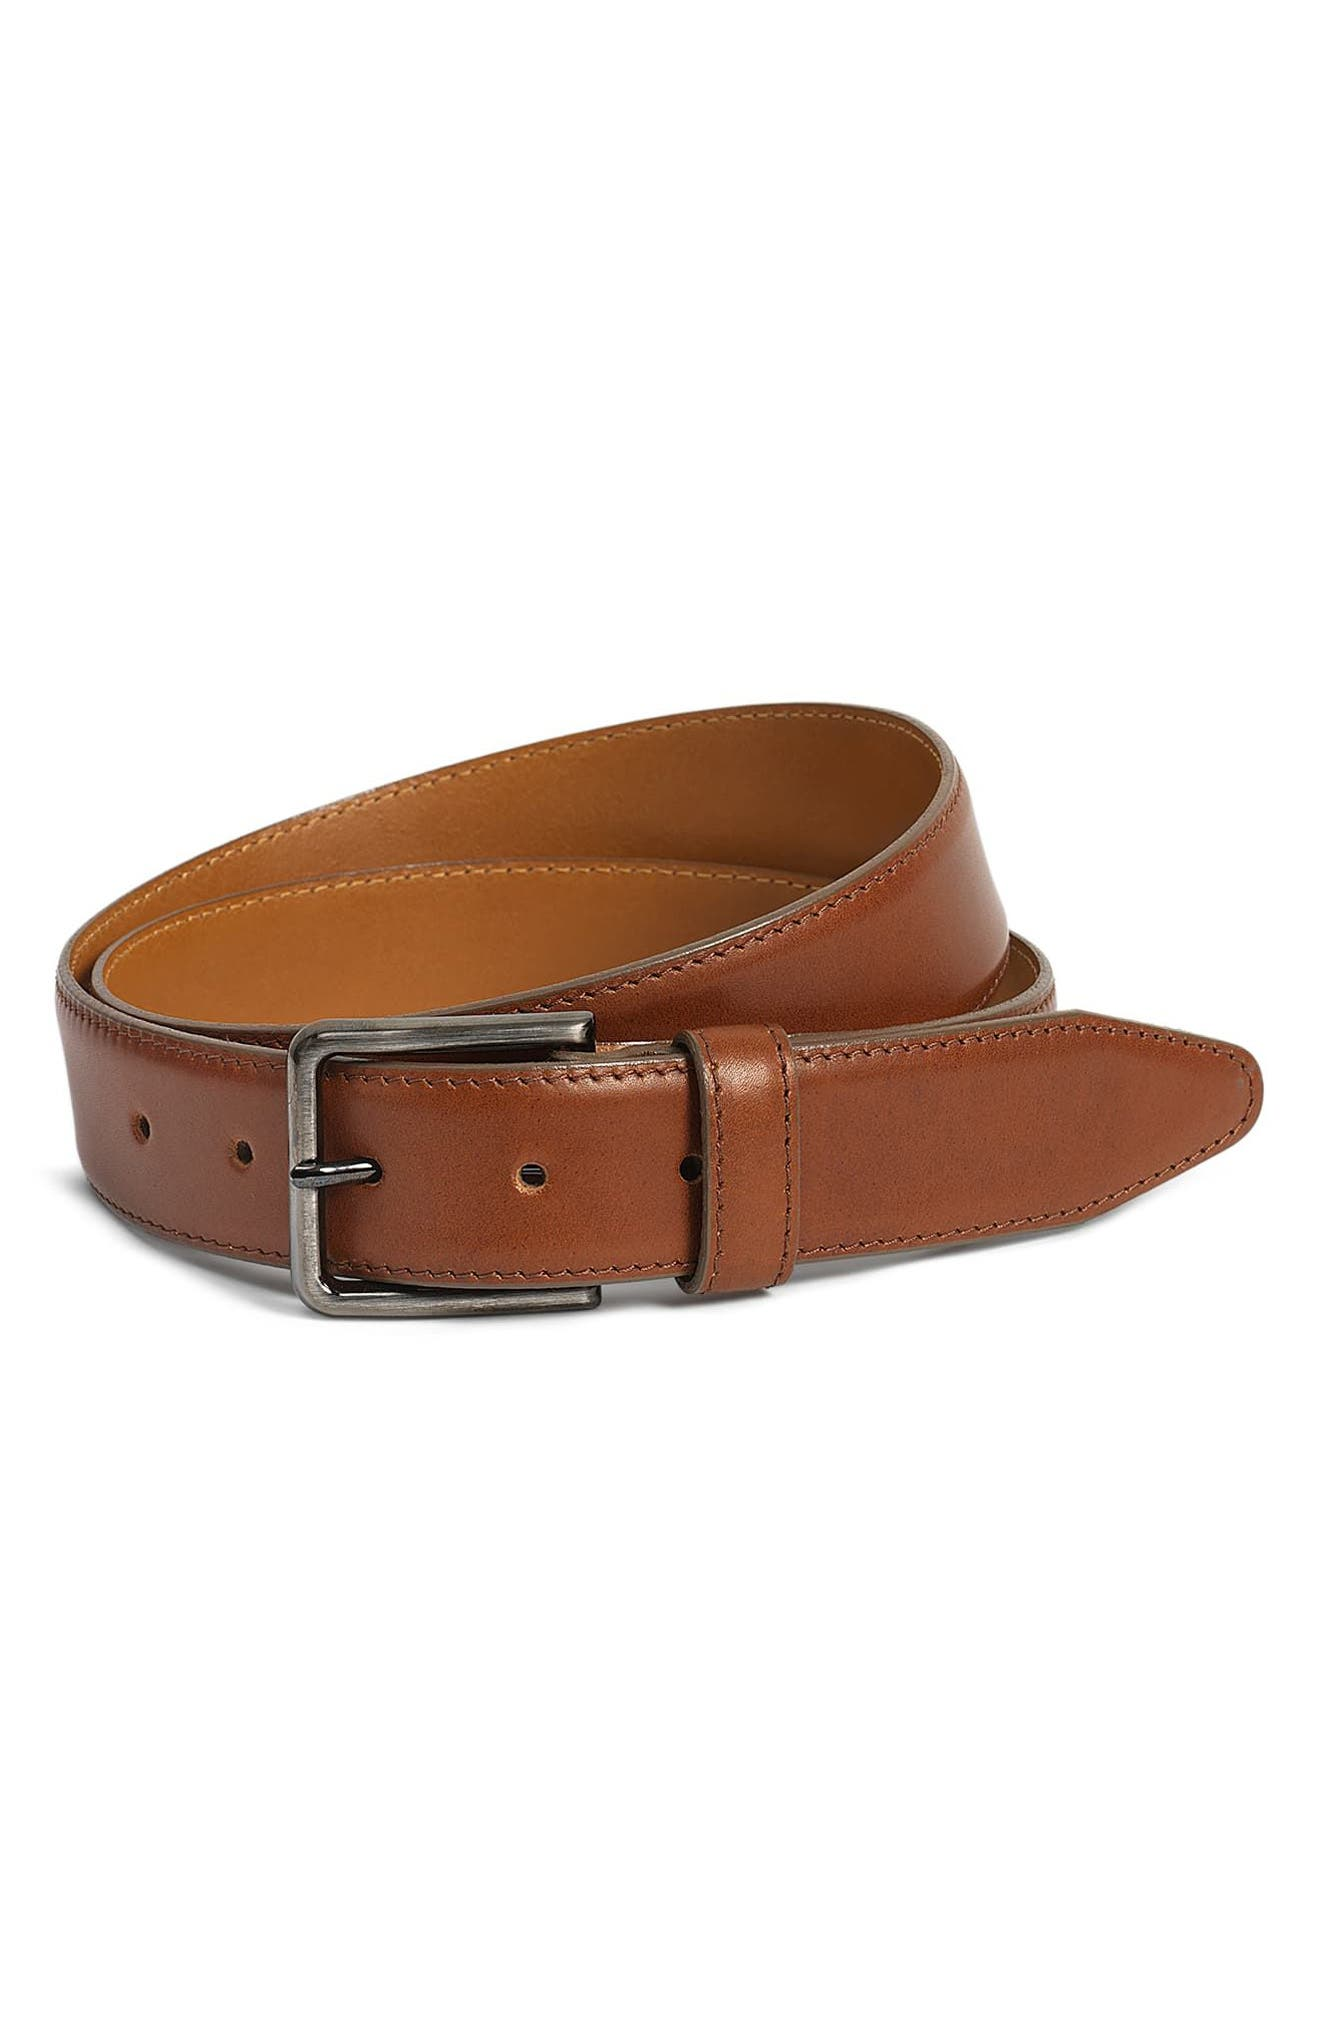 Trask Flint Leather Belt